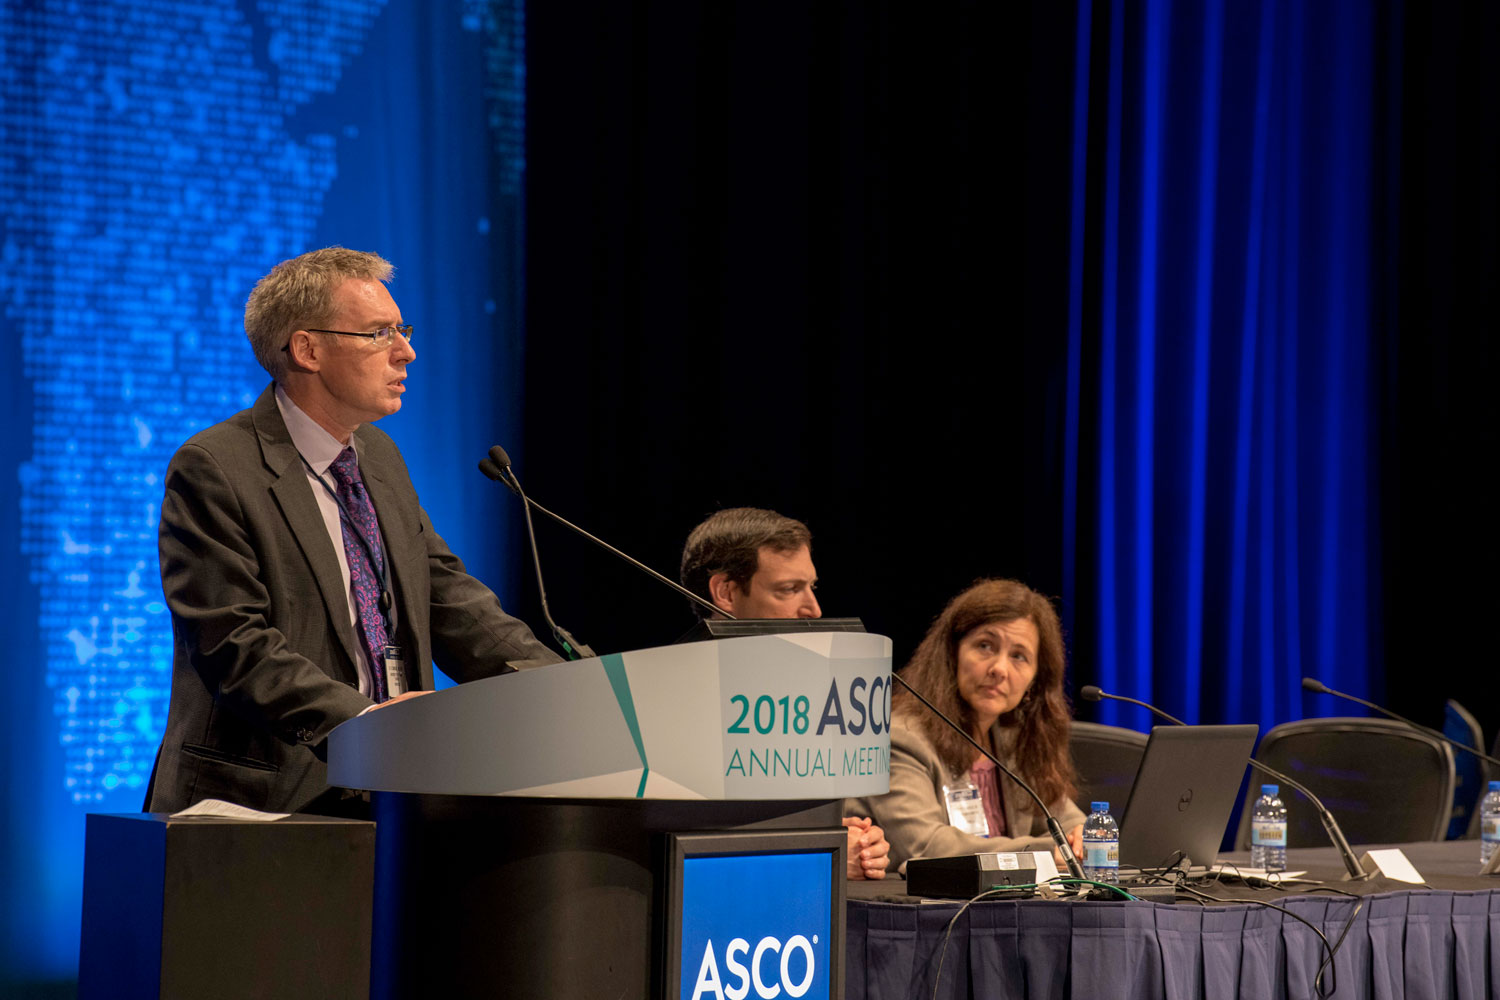 D. Ross Camidge speaking at ASCO18